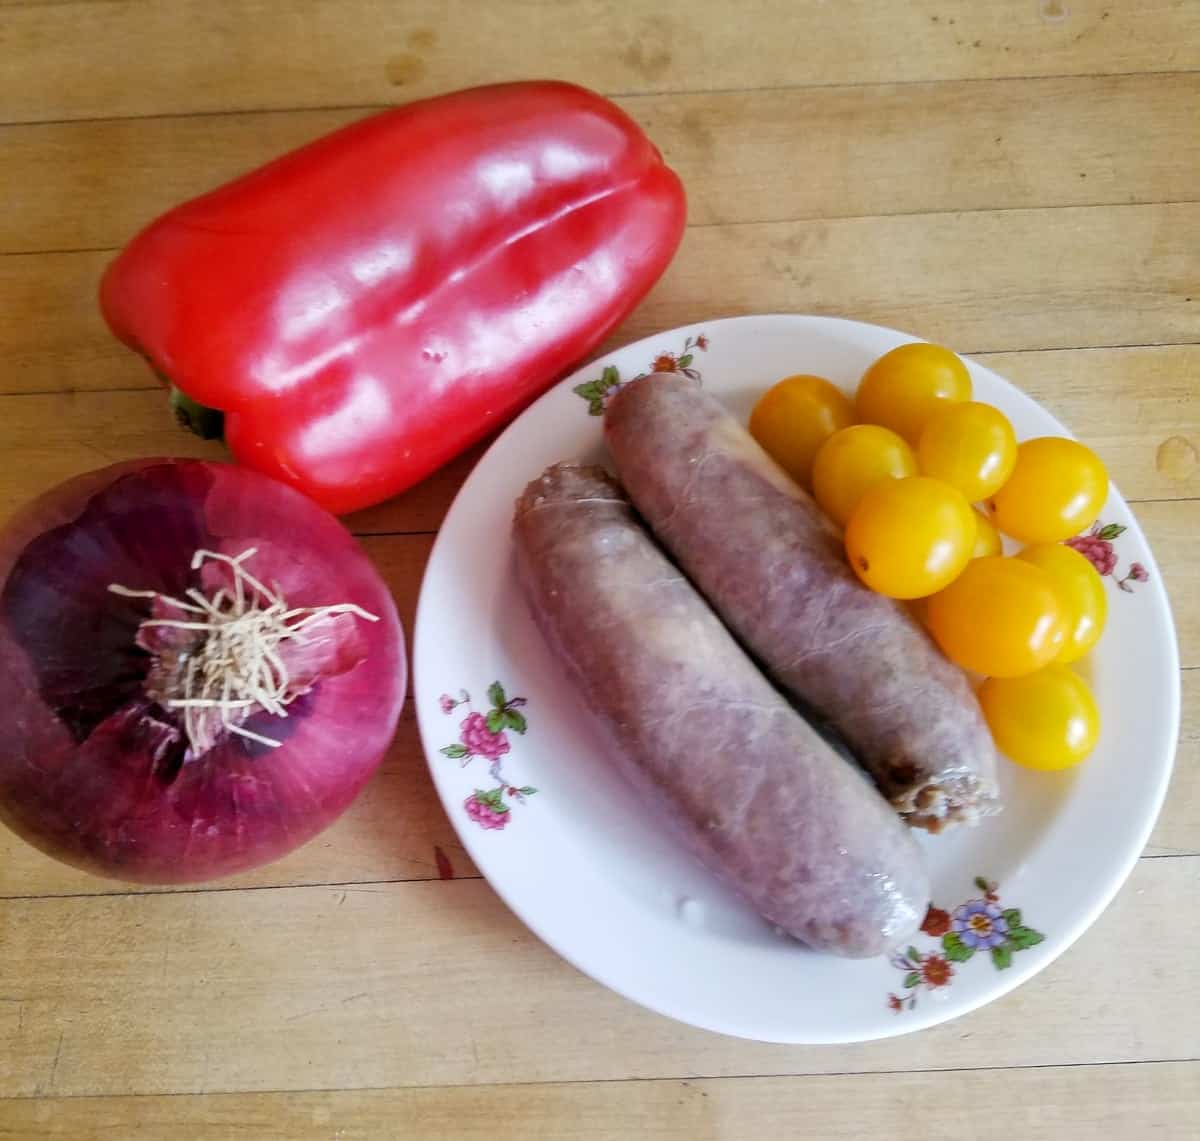 Two sausage links and cherry tomatoes on plate near red onion and red pepper on cutting board.